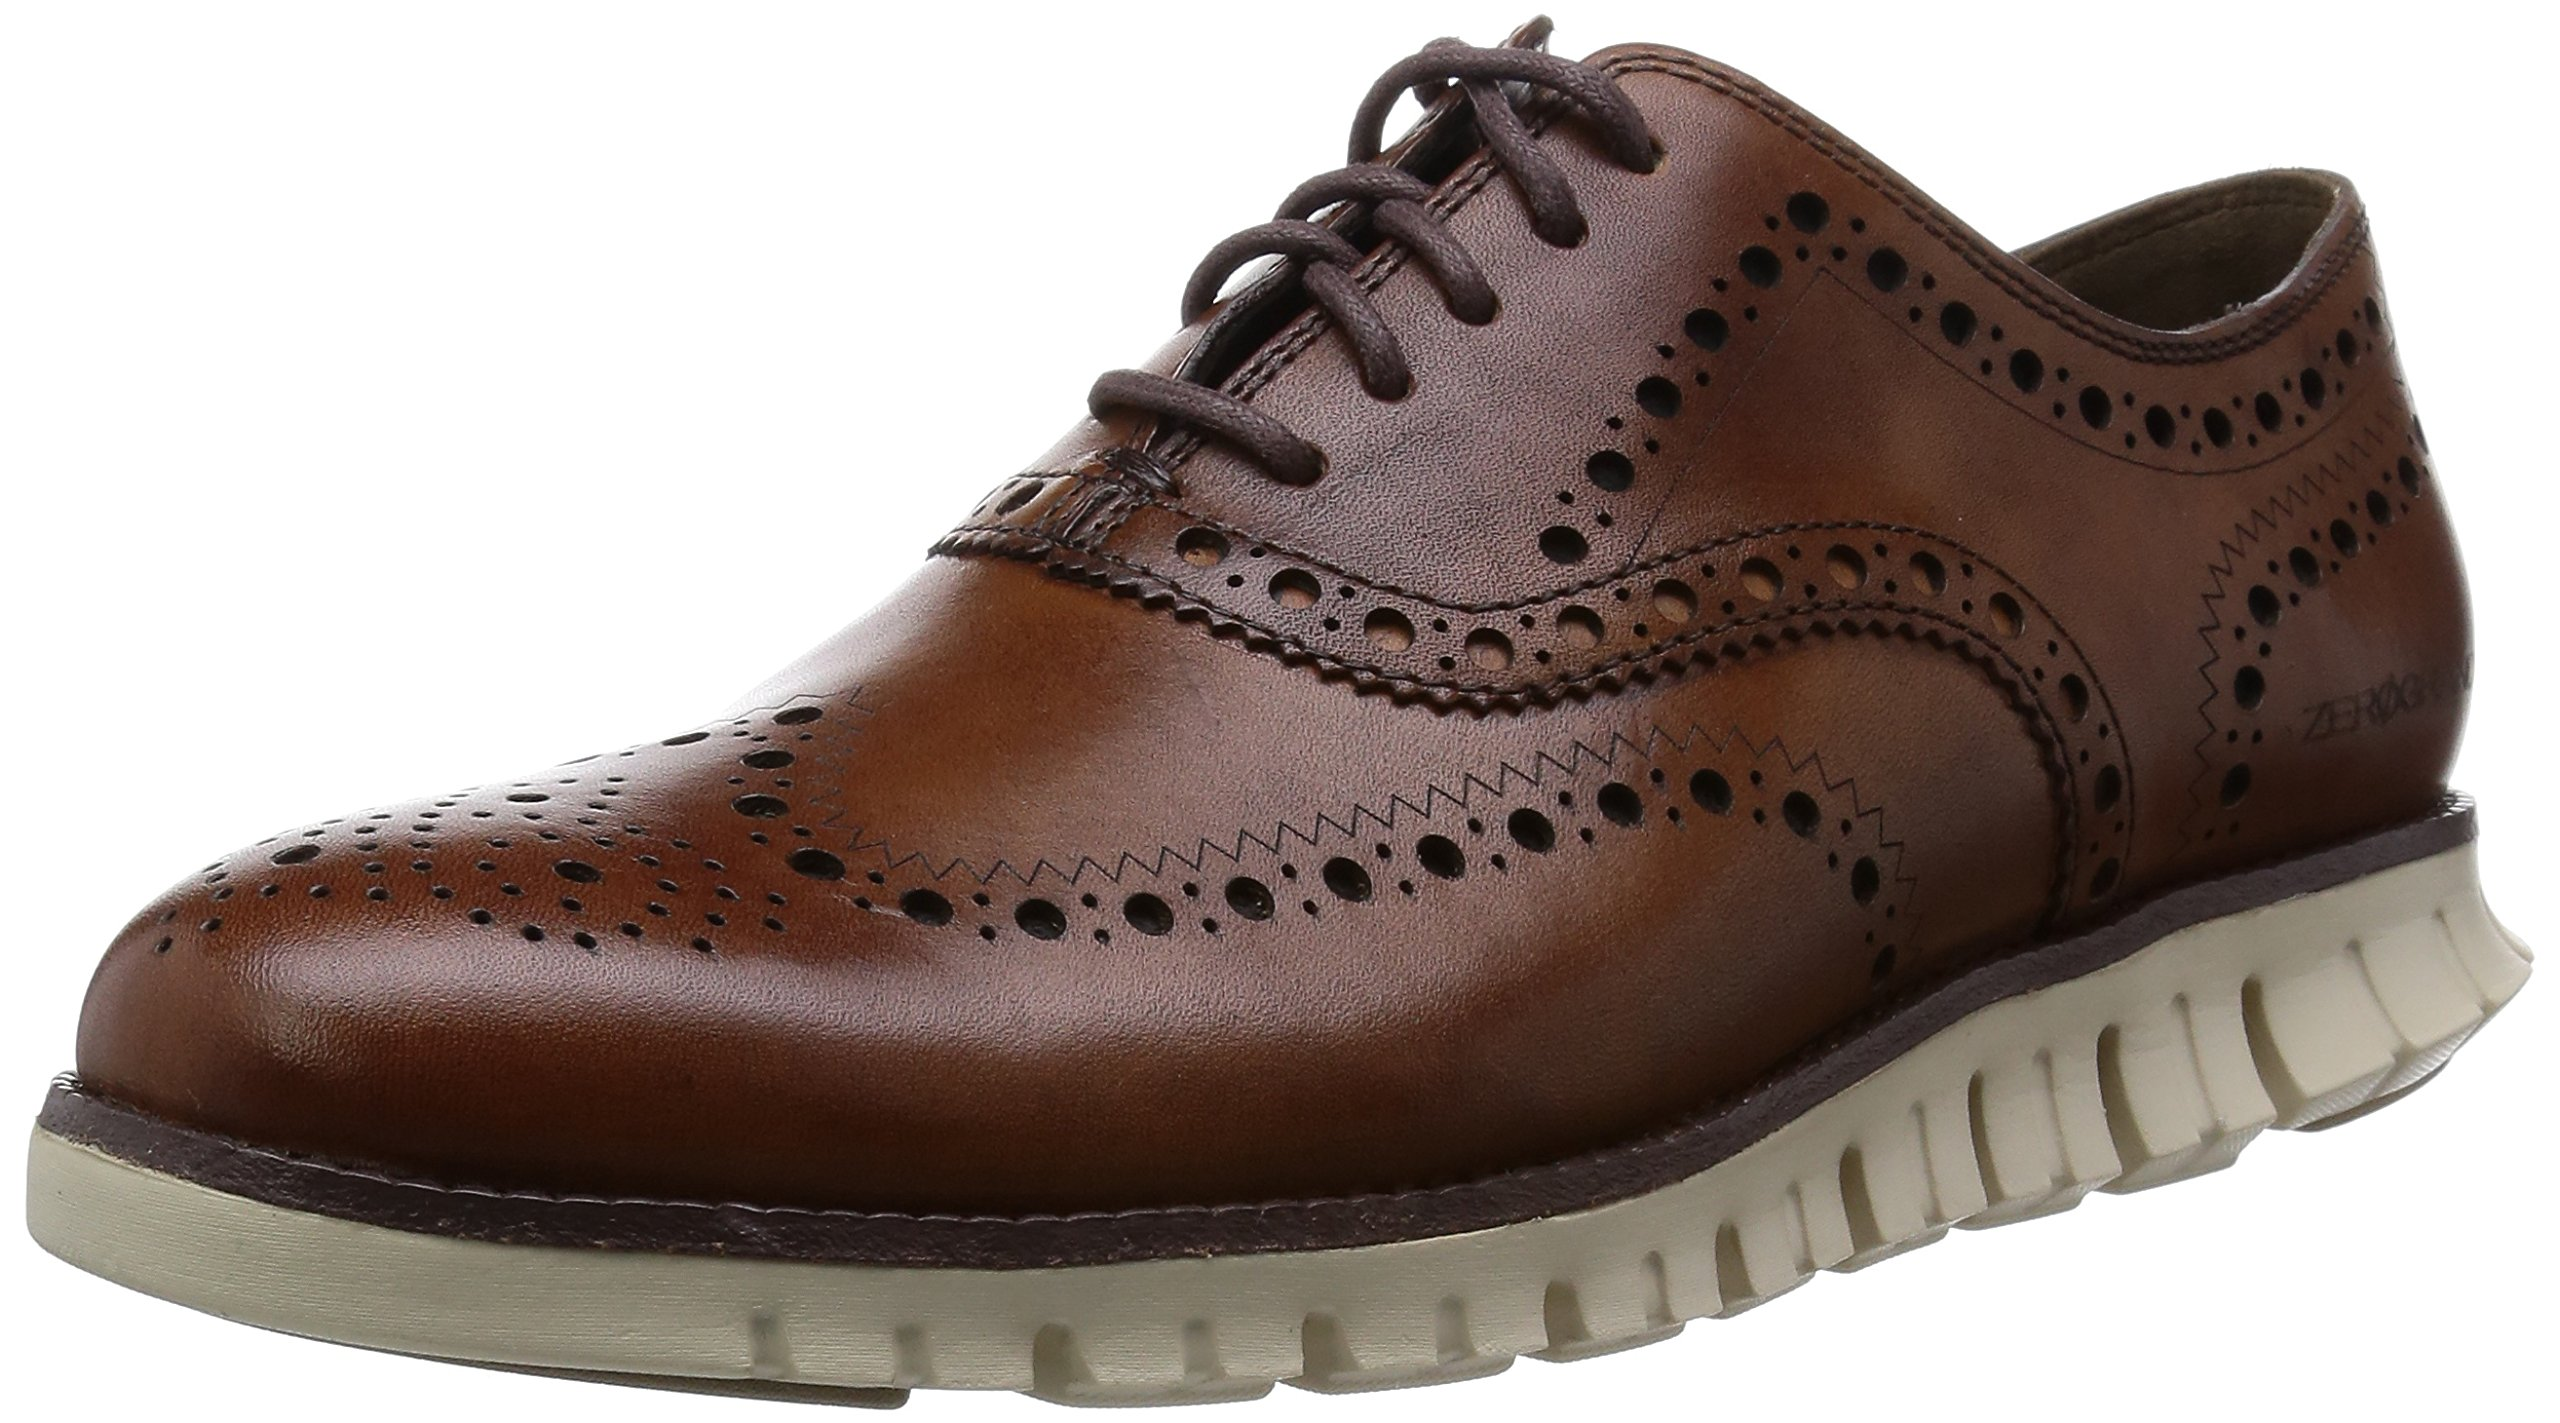 Cole Haan Men's Zerogrand Wing Oxford, British Tan, 7.5 M US